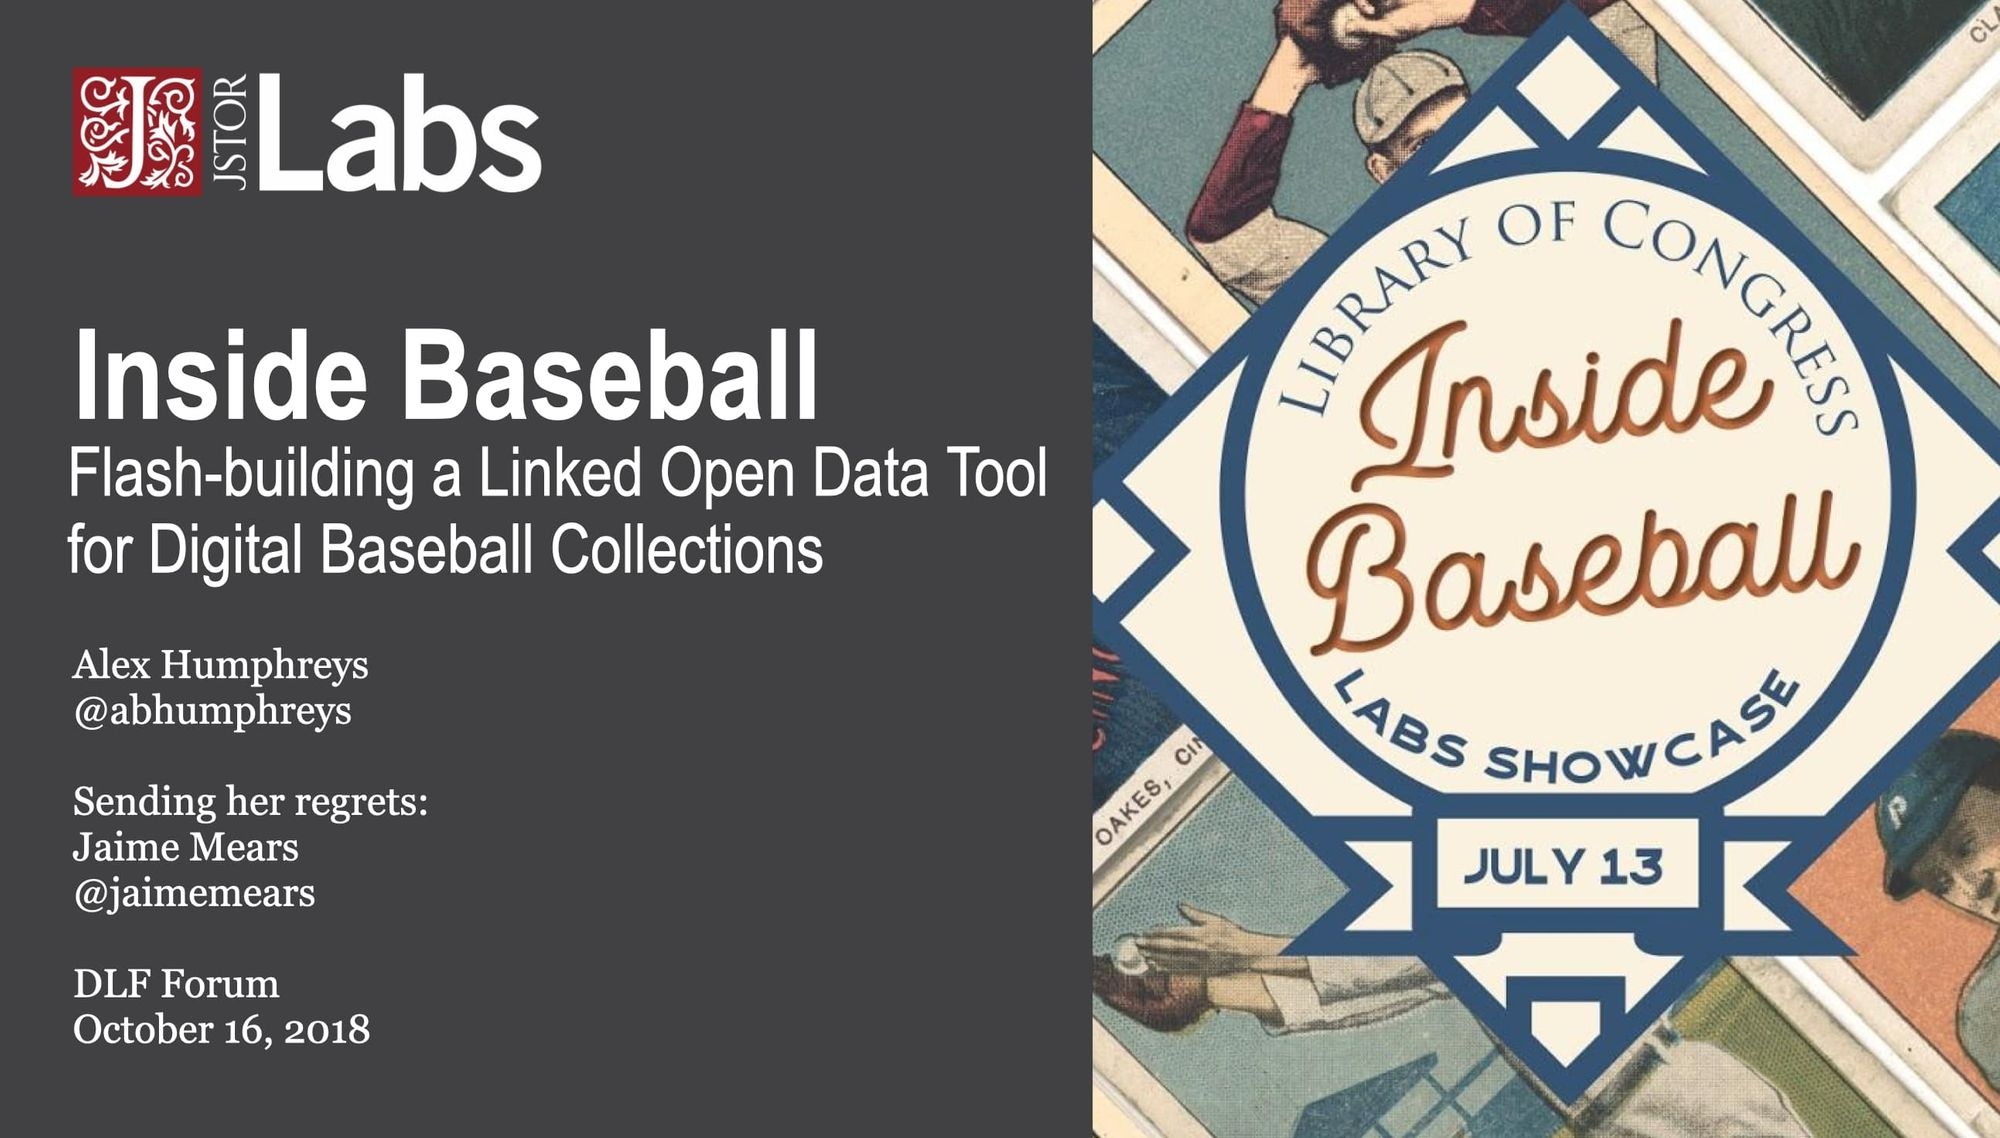 Playing Ball: Flash-building a Linked Open Data Tool for Digital Baseball Collections